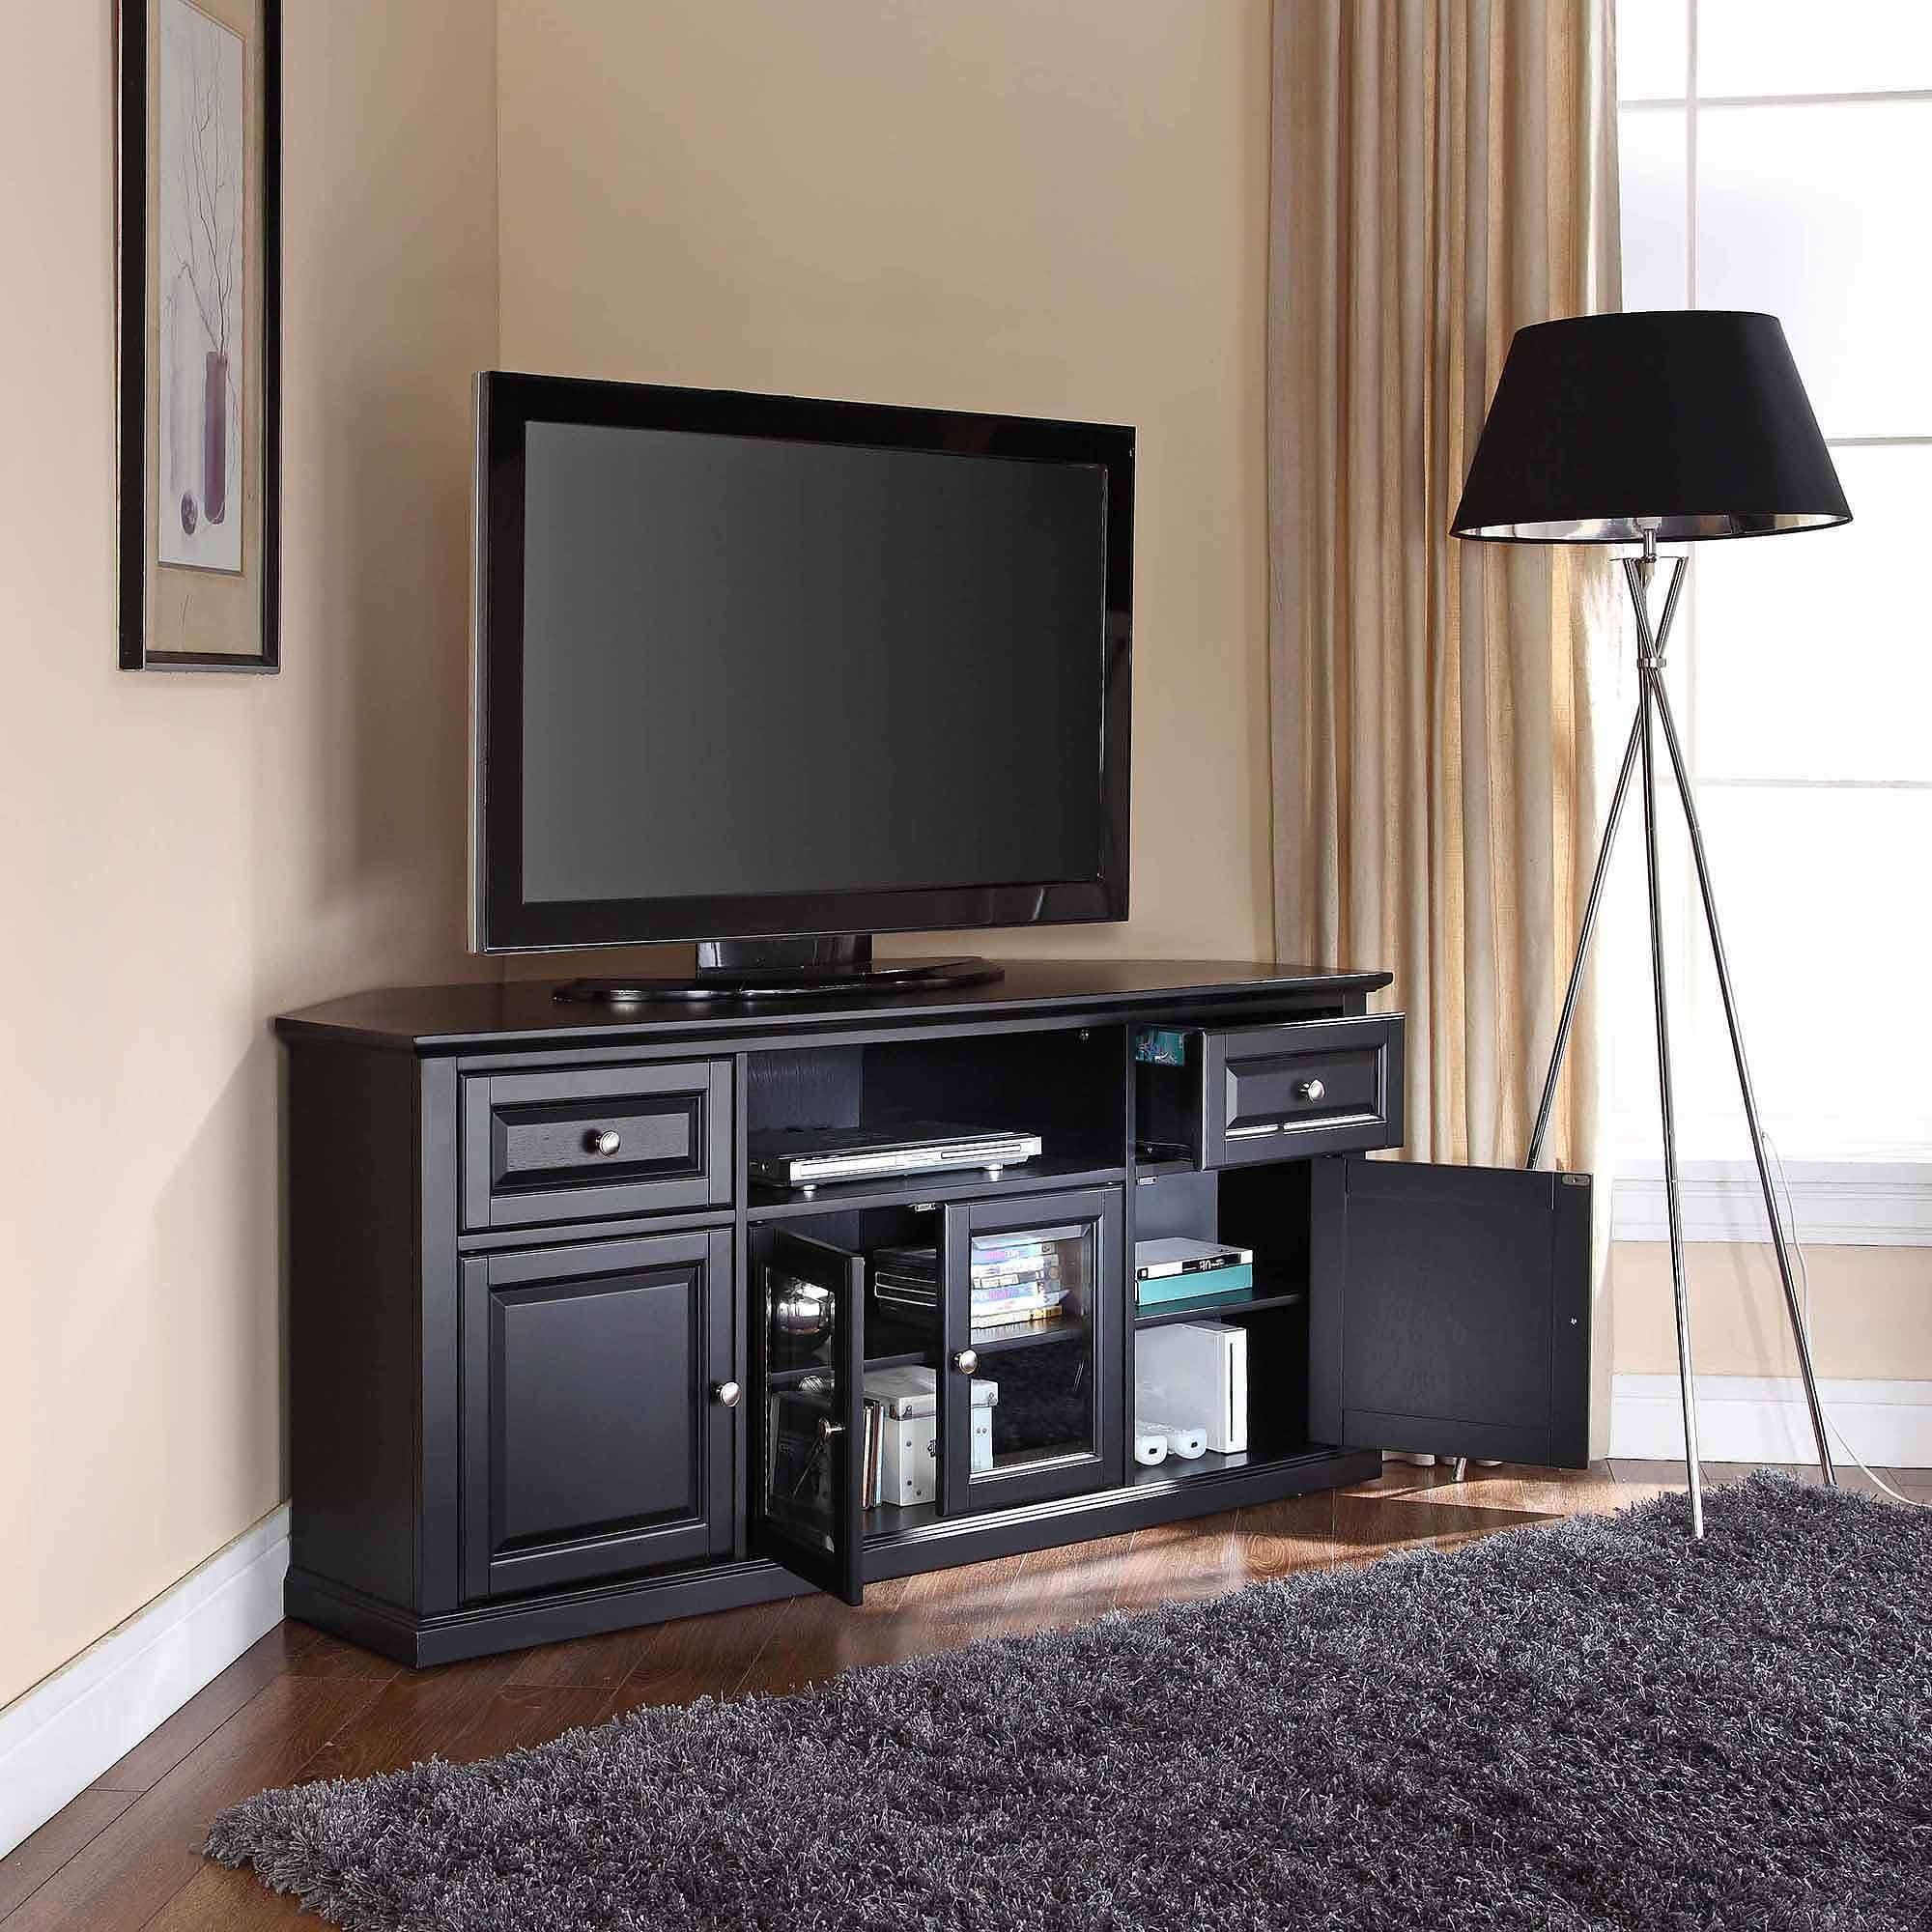 "Crosley Furniture Corner Tv Stand For Tvs Up To 60"" – Walmart Inside Corner Tv Stands (View 6 of 15)"